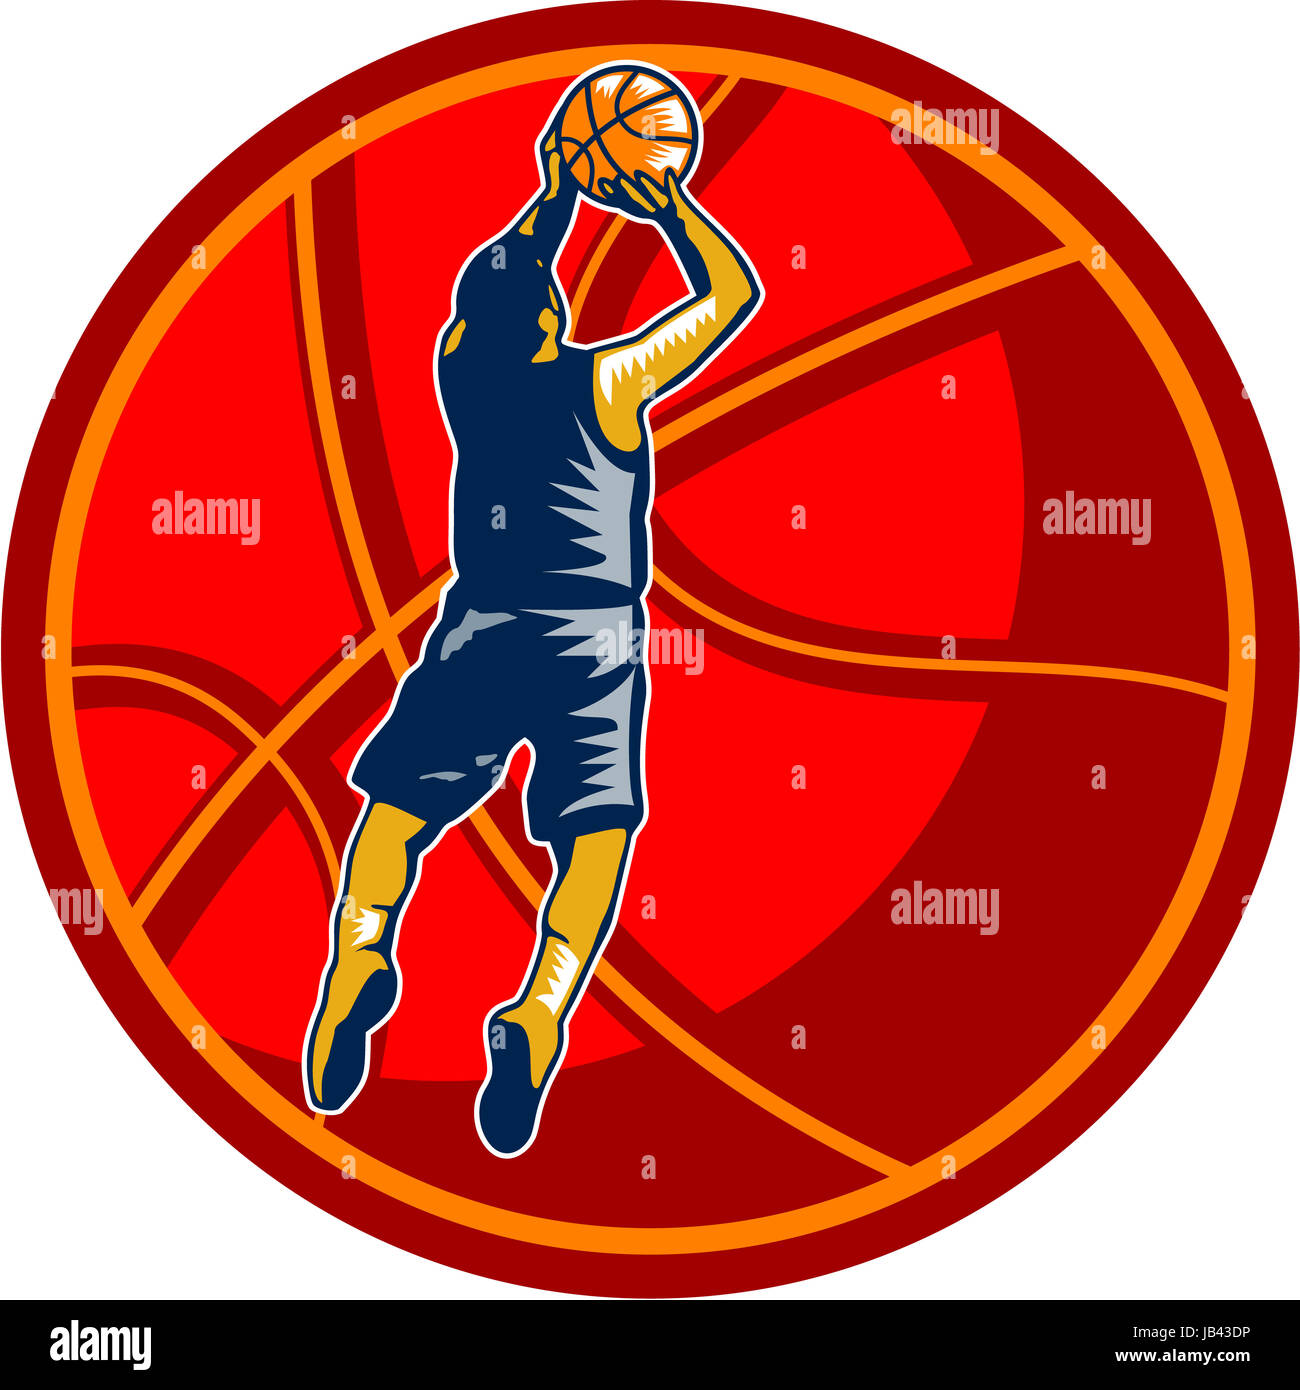 Illustration of a basketball player jump shot jumper shooting jumping set inside giant ball on isolated white background. - Stock Image